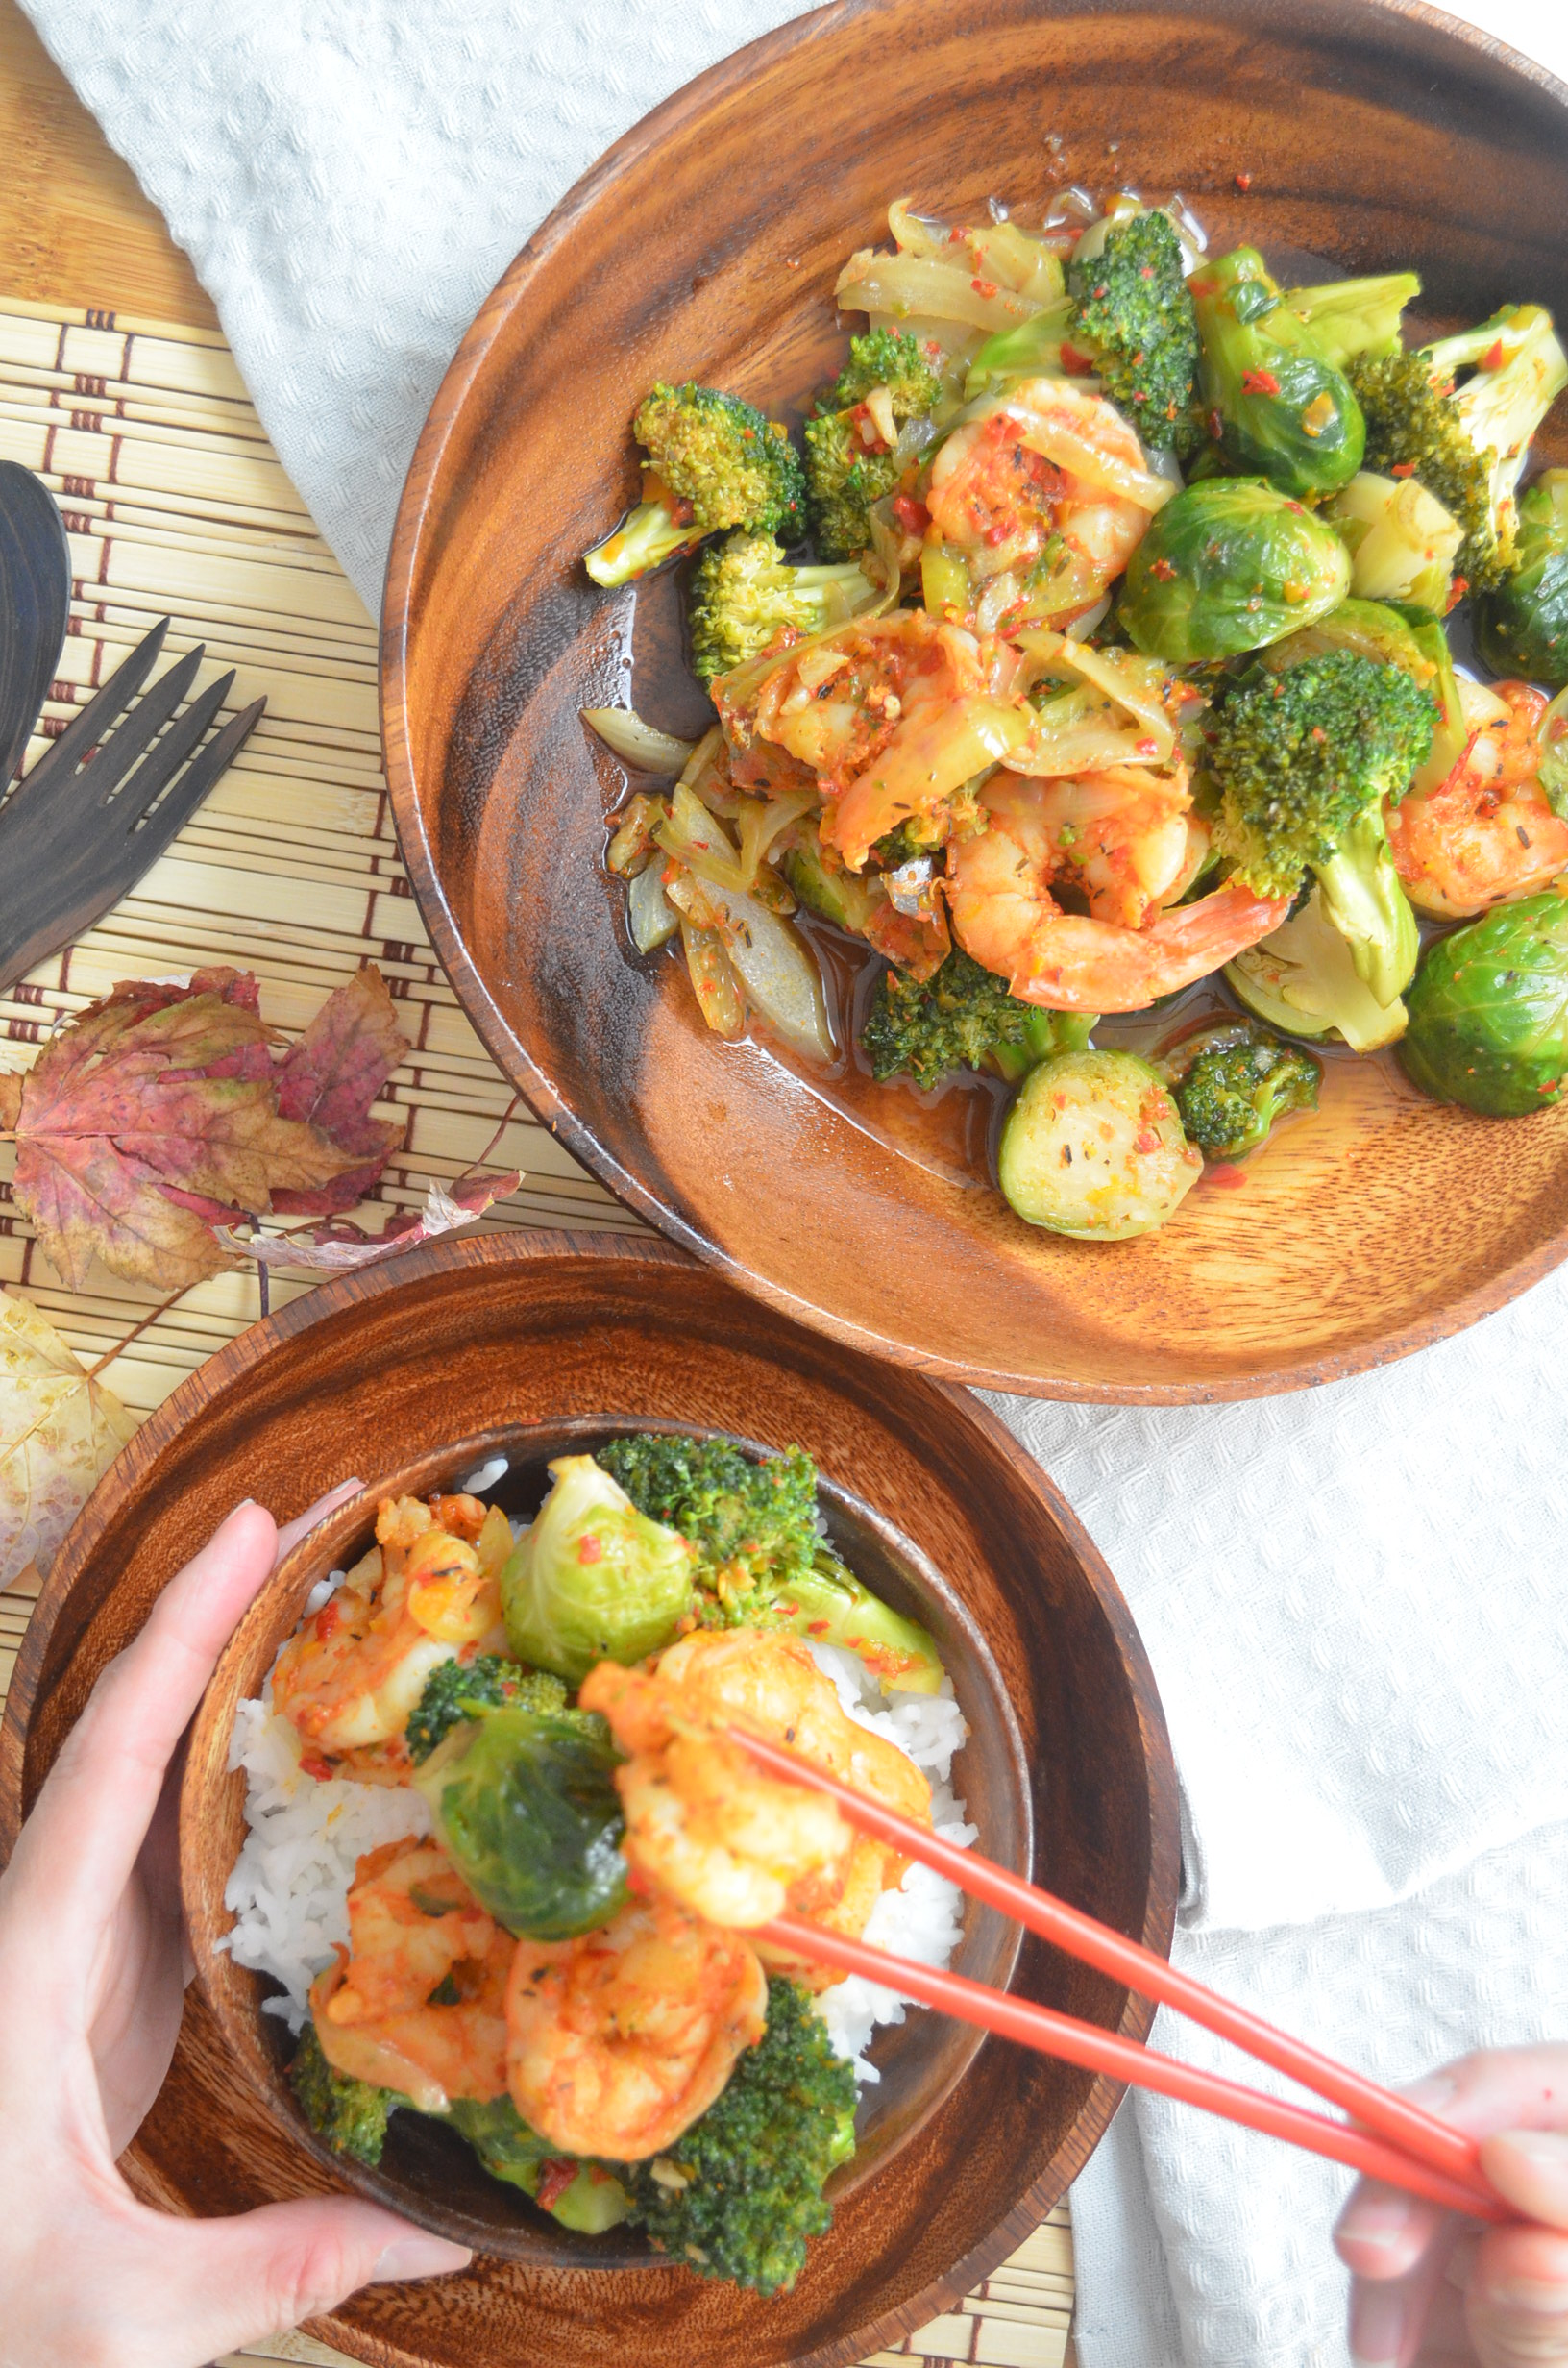 Shrimp Broccoli and Brussels Sprout Stir-Fry